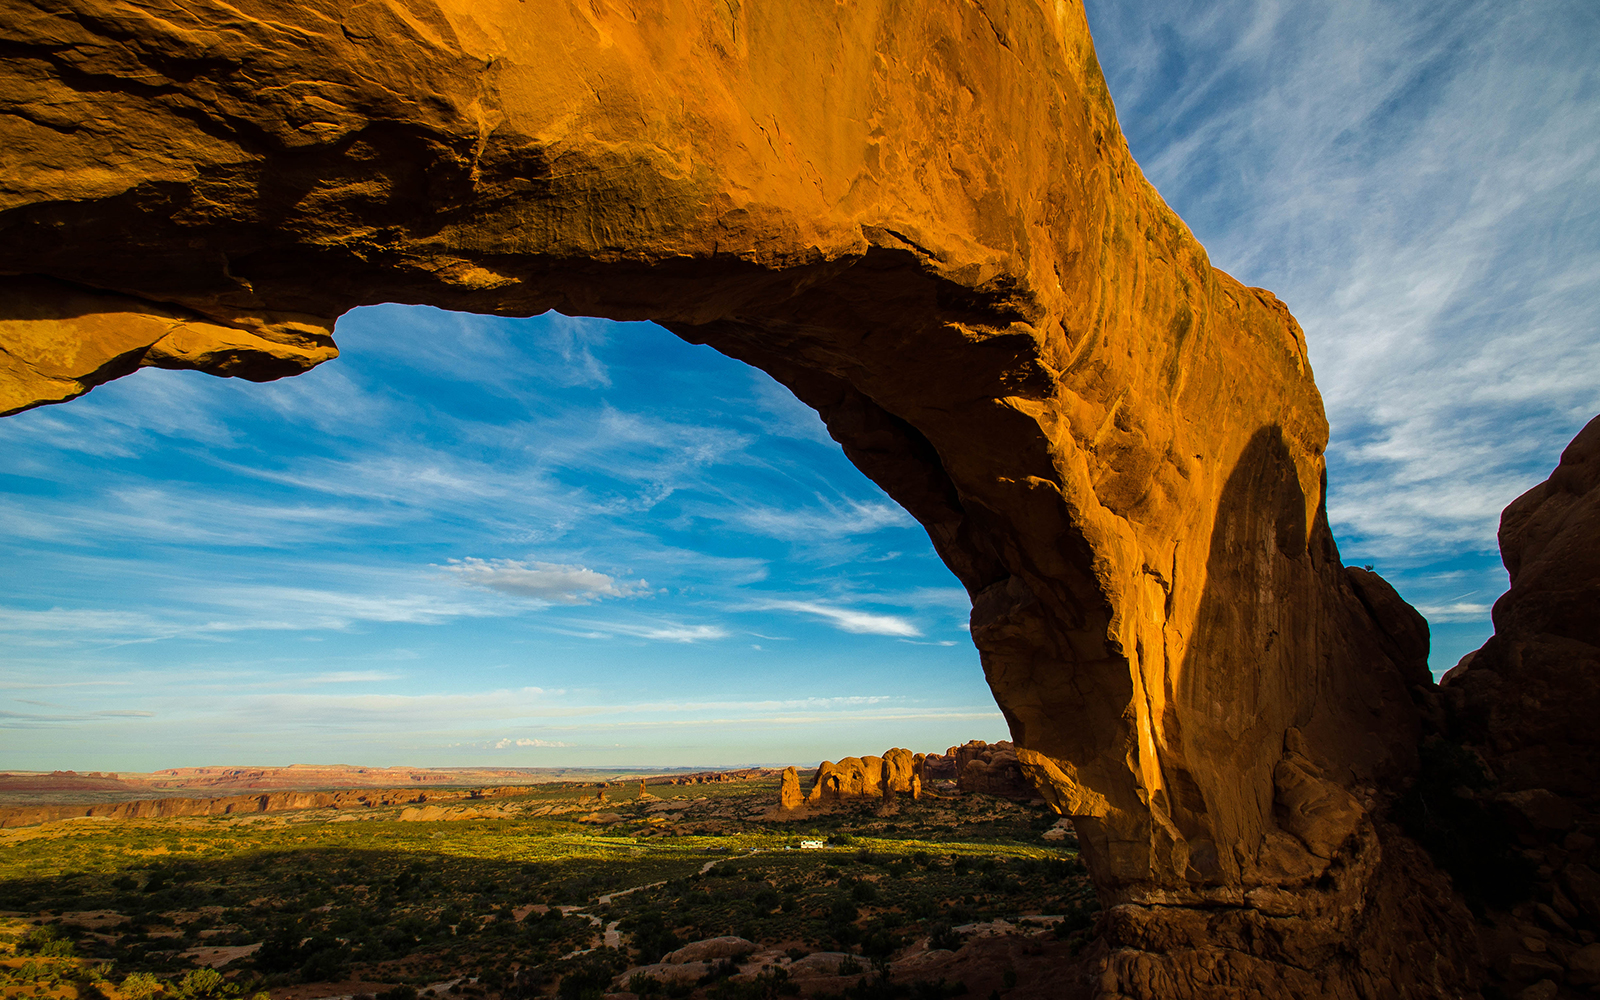 Best for Friend Trips: Arches, Utah